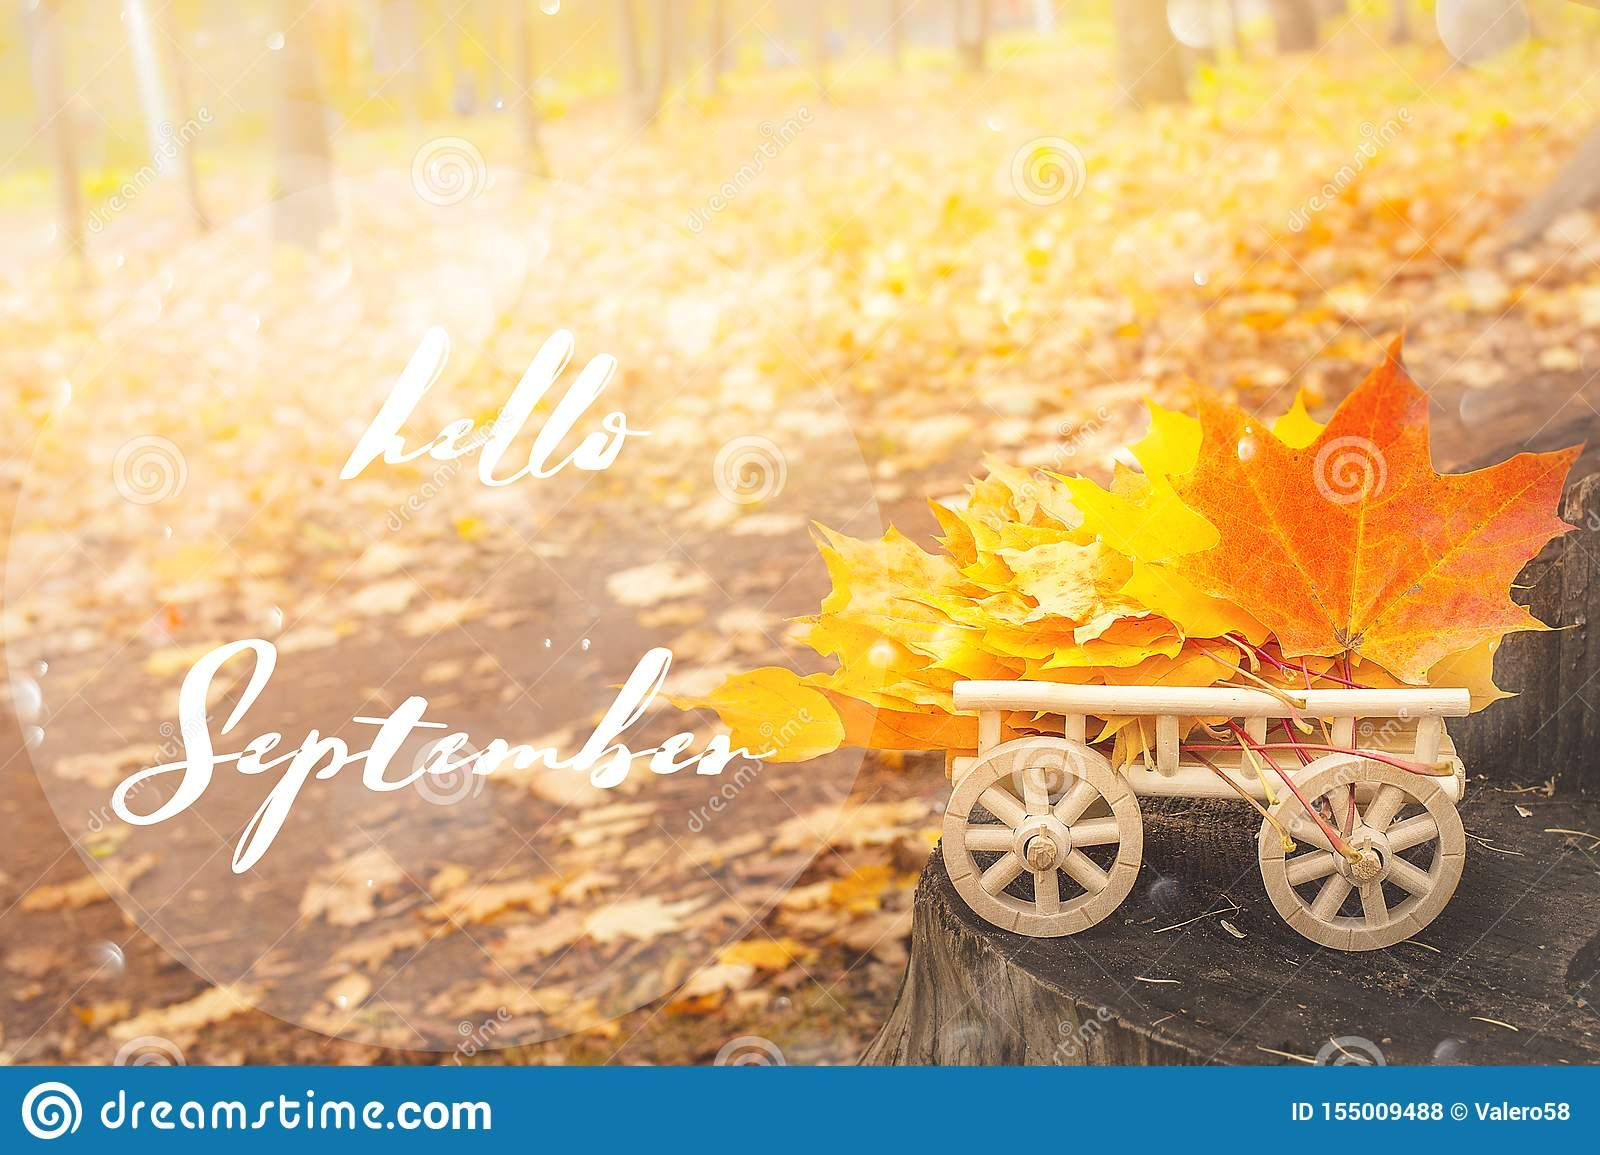 Photo about HELLO SEPTEMBER lettering card. maple leaves on a wooden cart. Autumn background concept. Maple, yellow foliage, wooden stump. Image of tree, wood, retro - 155009488 #helloseptember